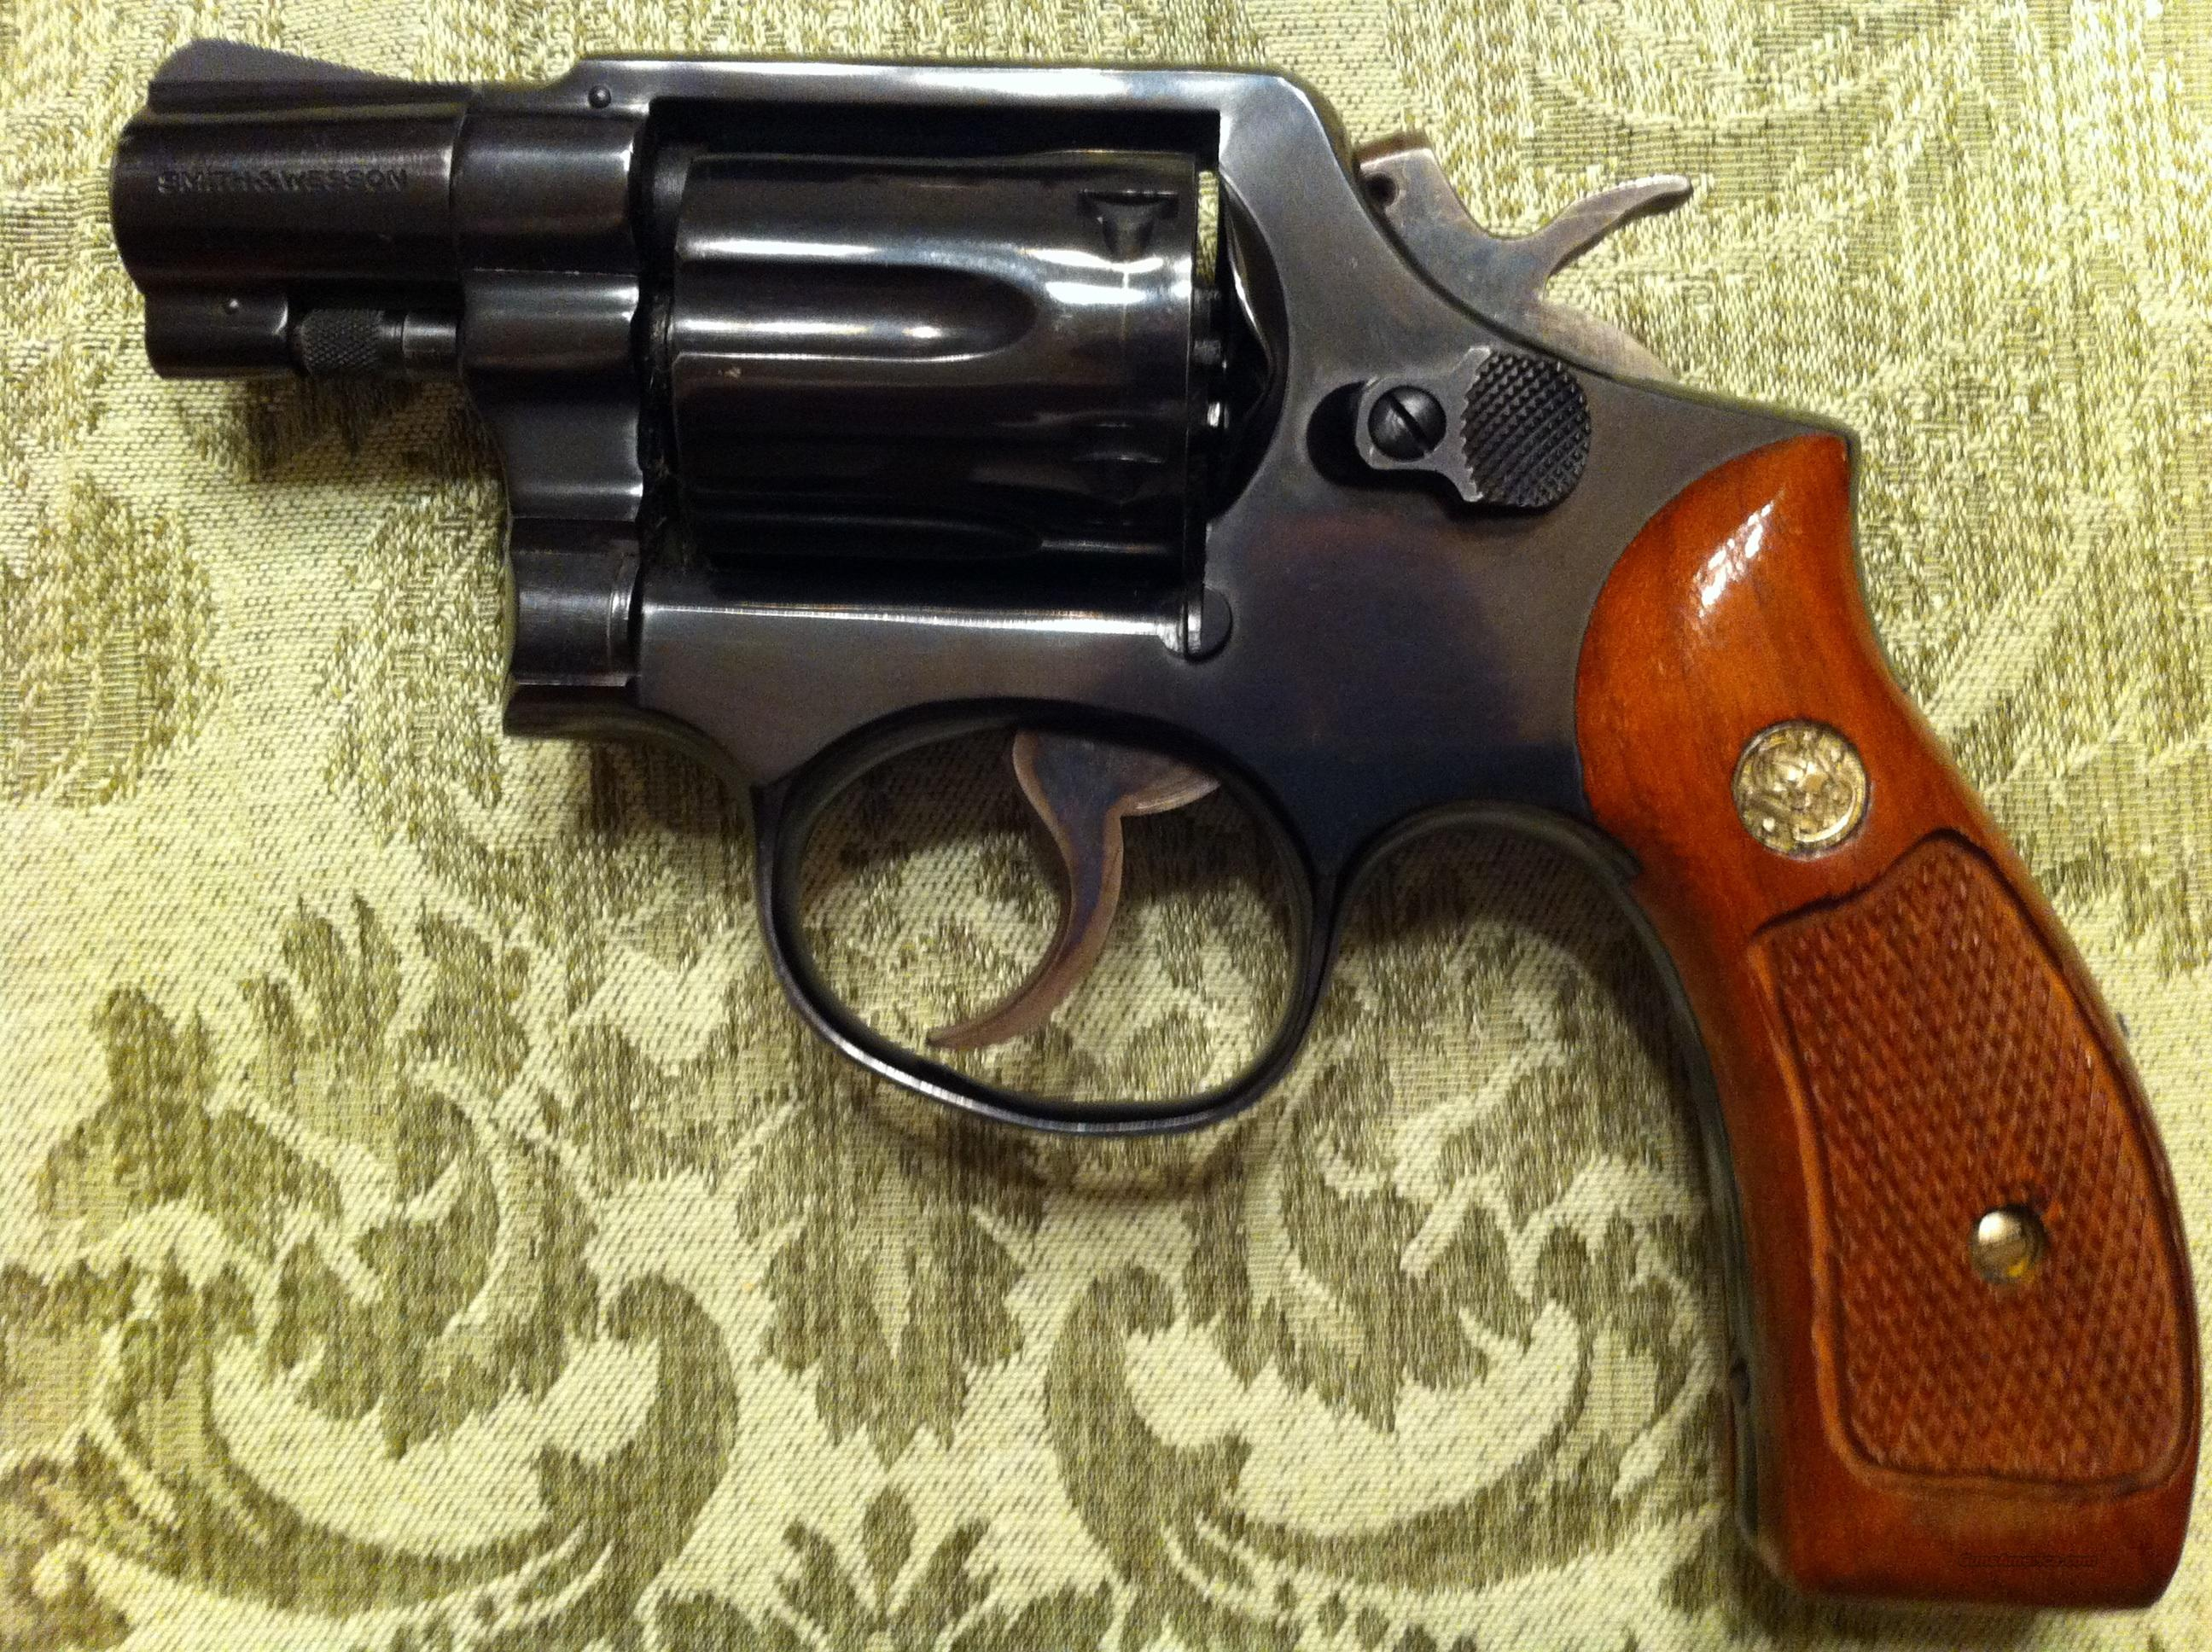 Smith and Wesson Model 10-5 Revolver 2 inch barrel  Guns > Pistols > Smith & Wesson Revolvers > Model 10